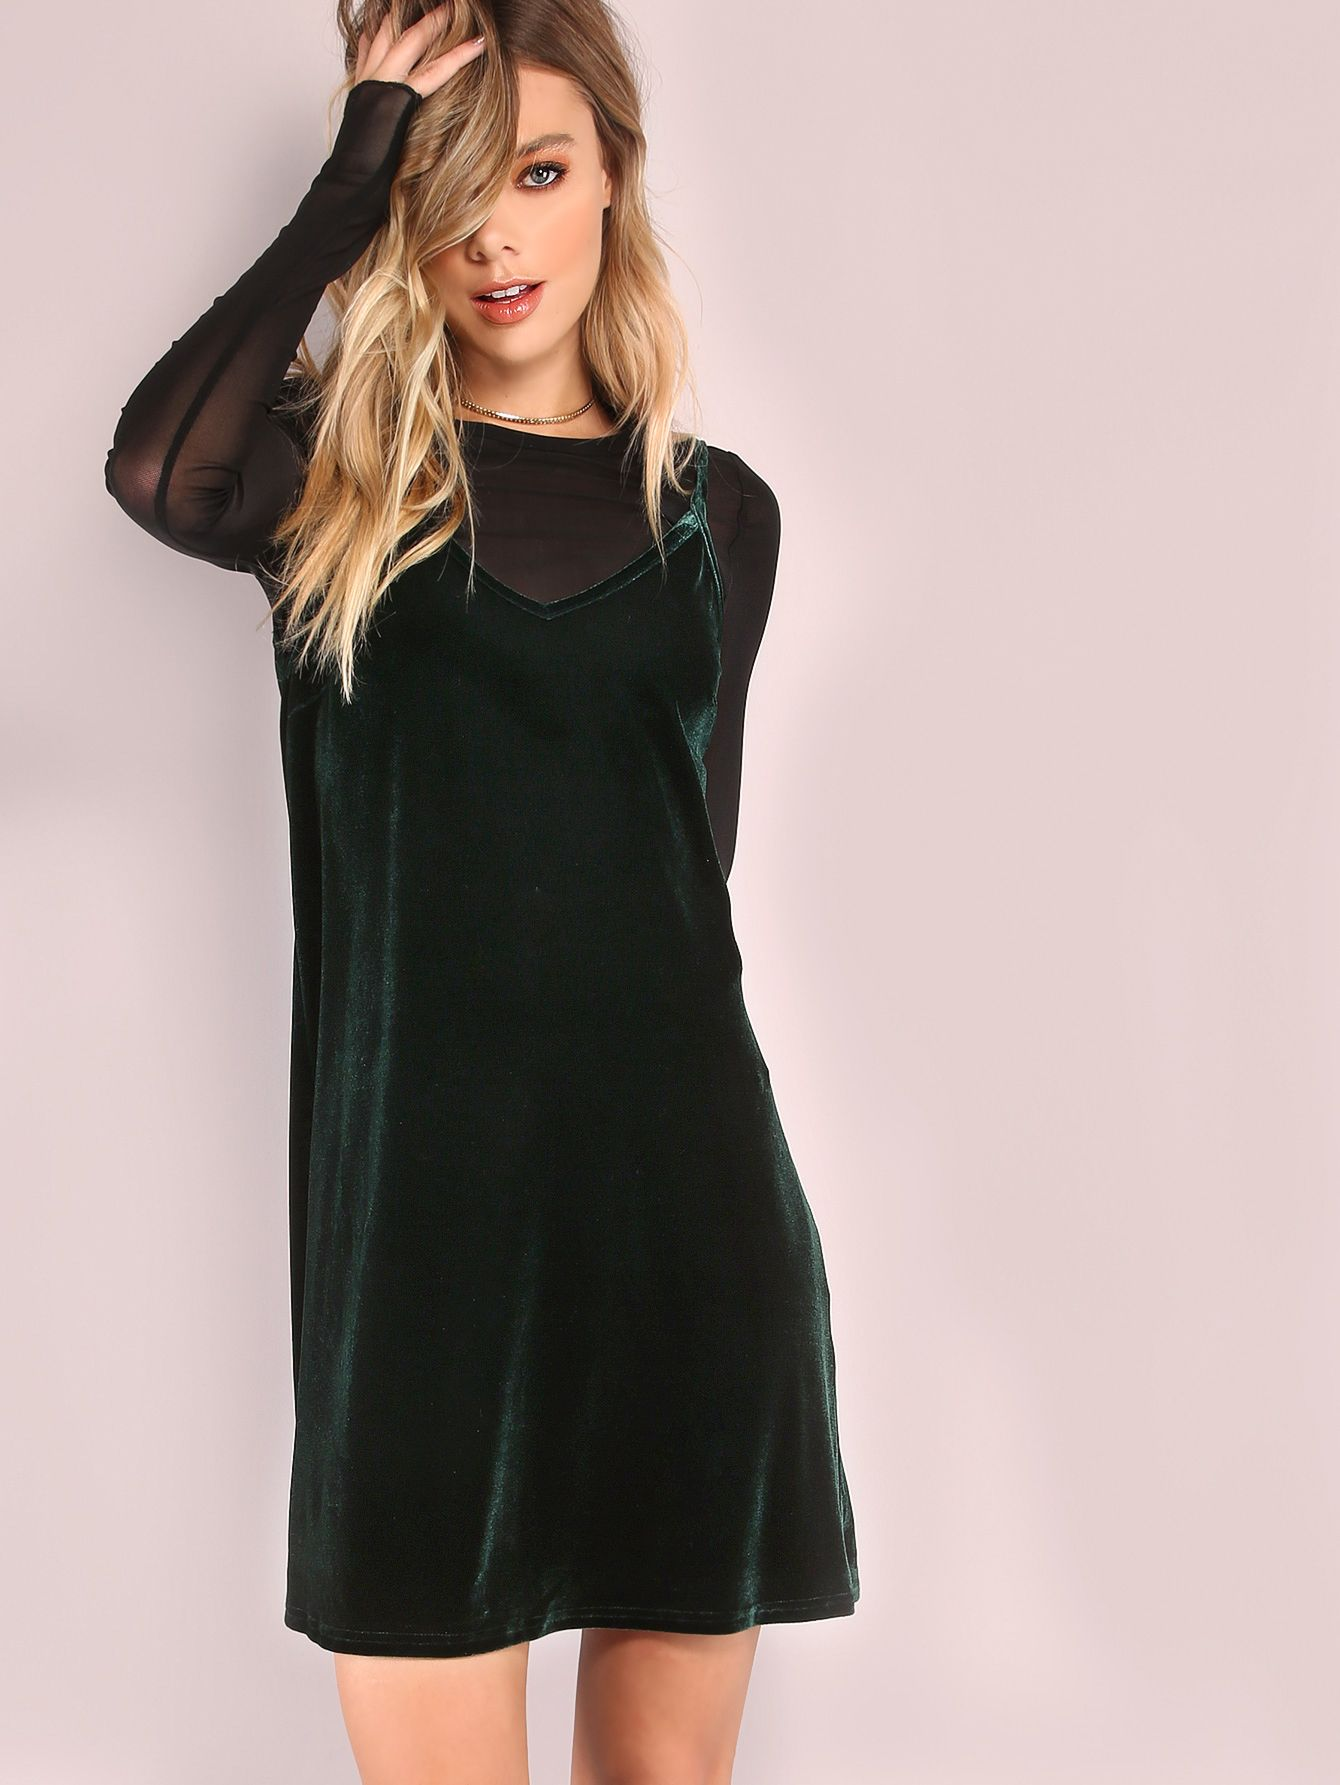 341c9197fa2b Shop Dark Green Swing Cami Dress online. SheIn offers Dark Green Swing Cami  Dress   more to fit your fashionable needs.